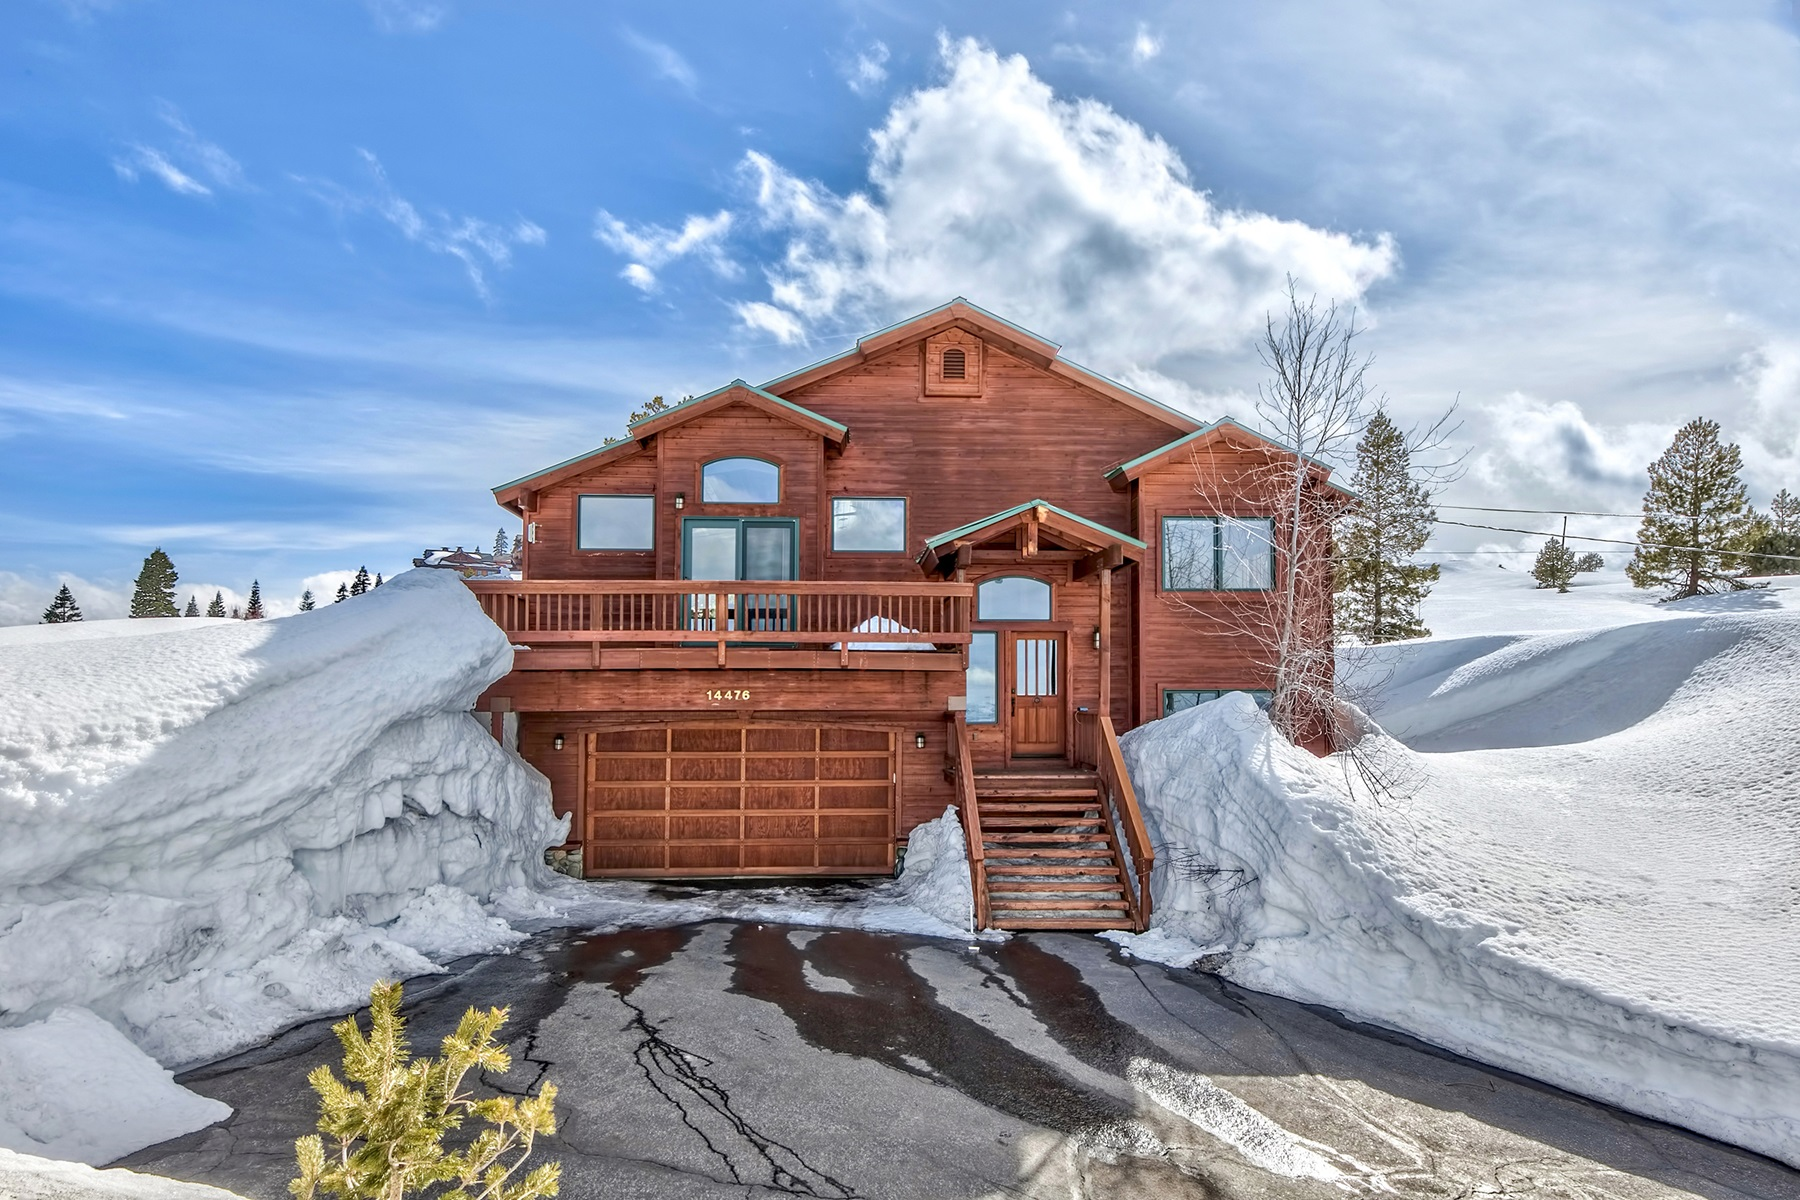 Single Family Home for Active at 14476 Skislope Way, Truckee, CA 14476 Skislope Way Truckee, California 96161 United States